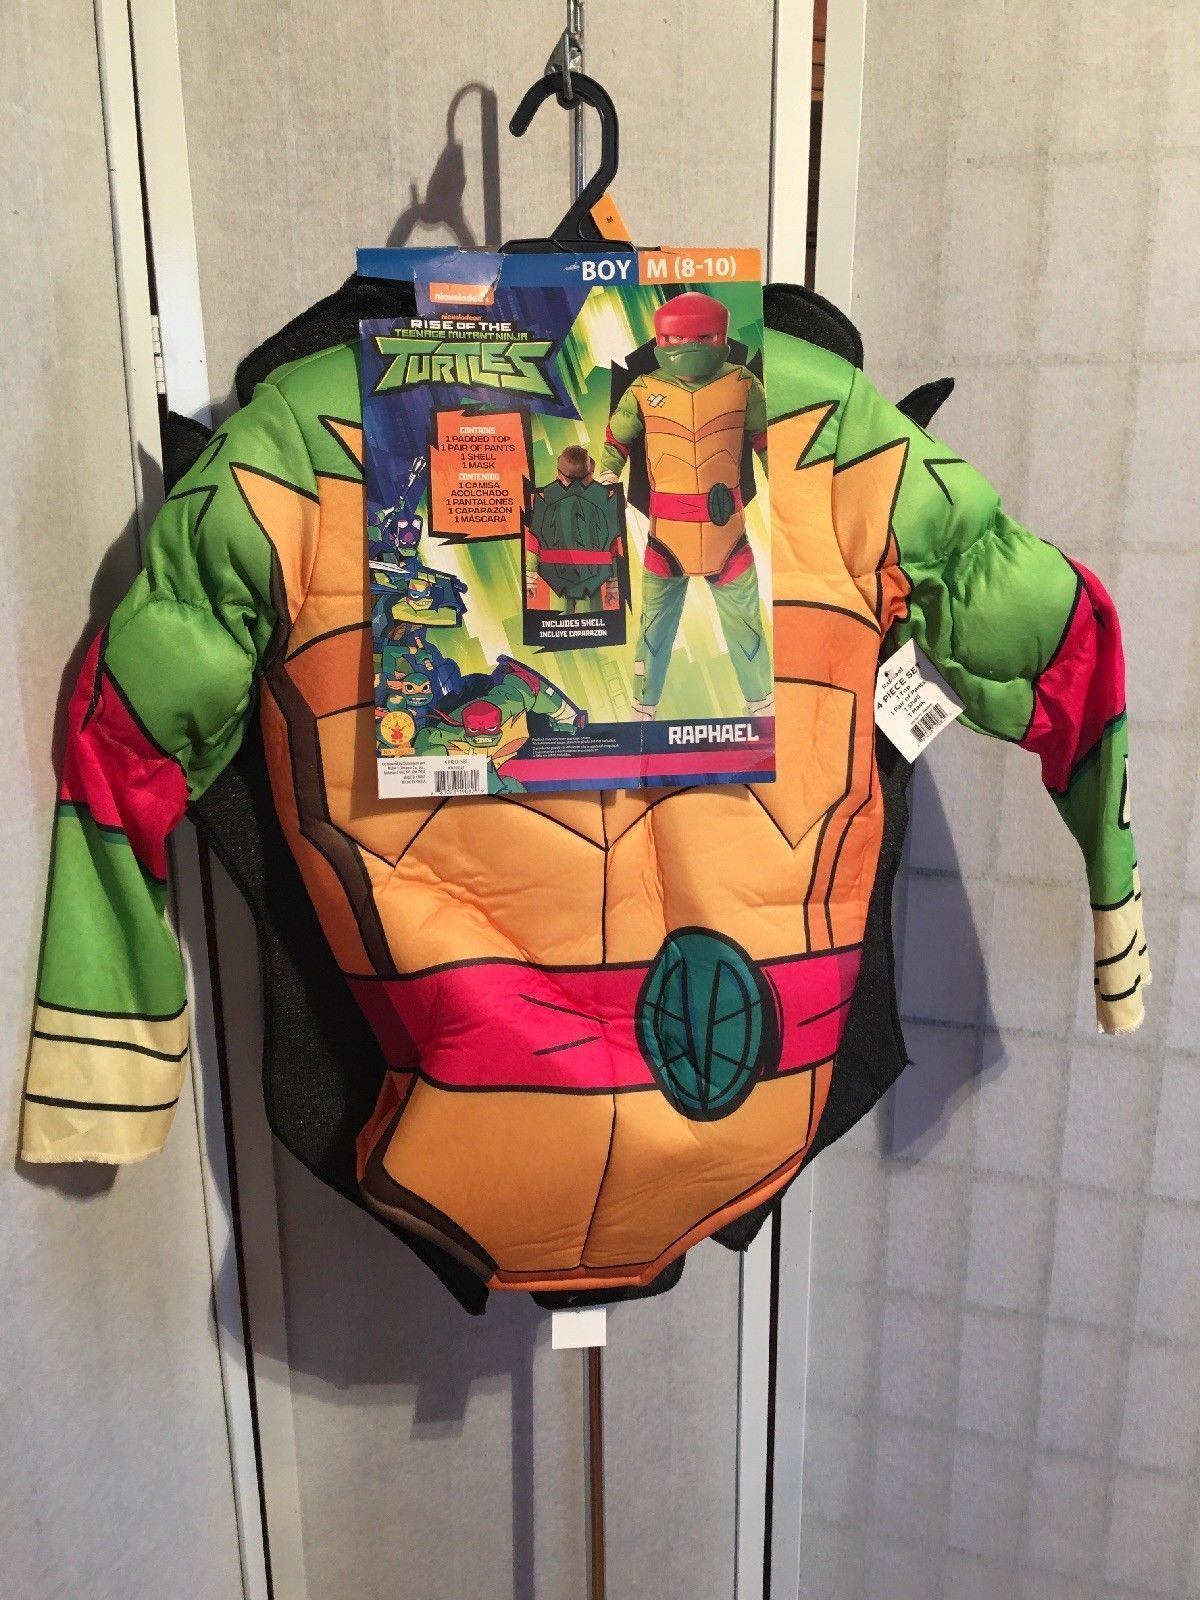 Halloween Costumes 2020 Rise Of The Turtles halloween costumes amigas #halloween #costumes #halloweencostumes